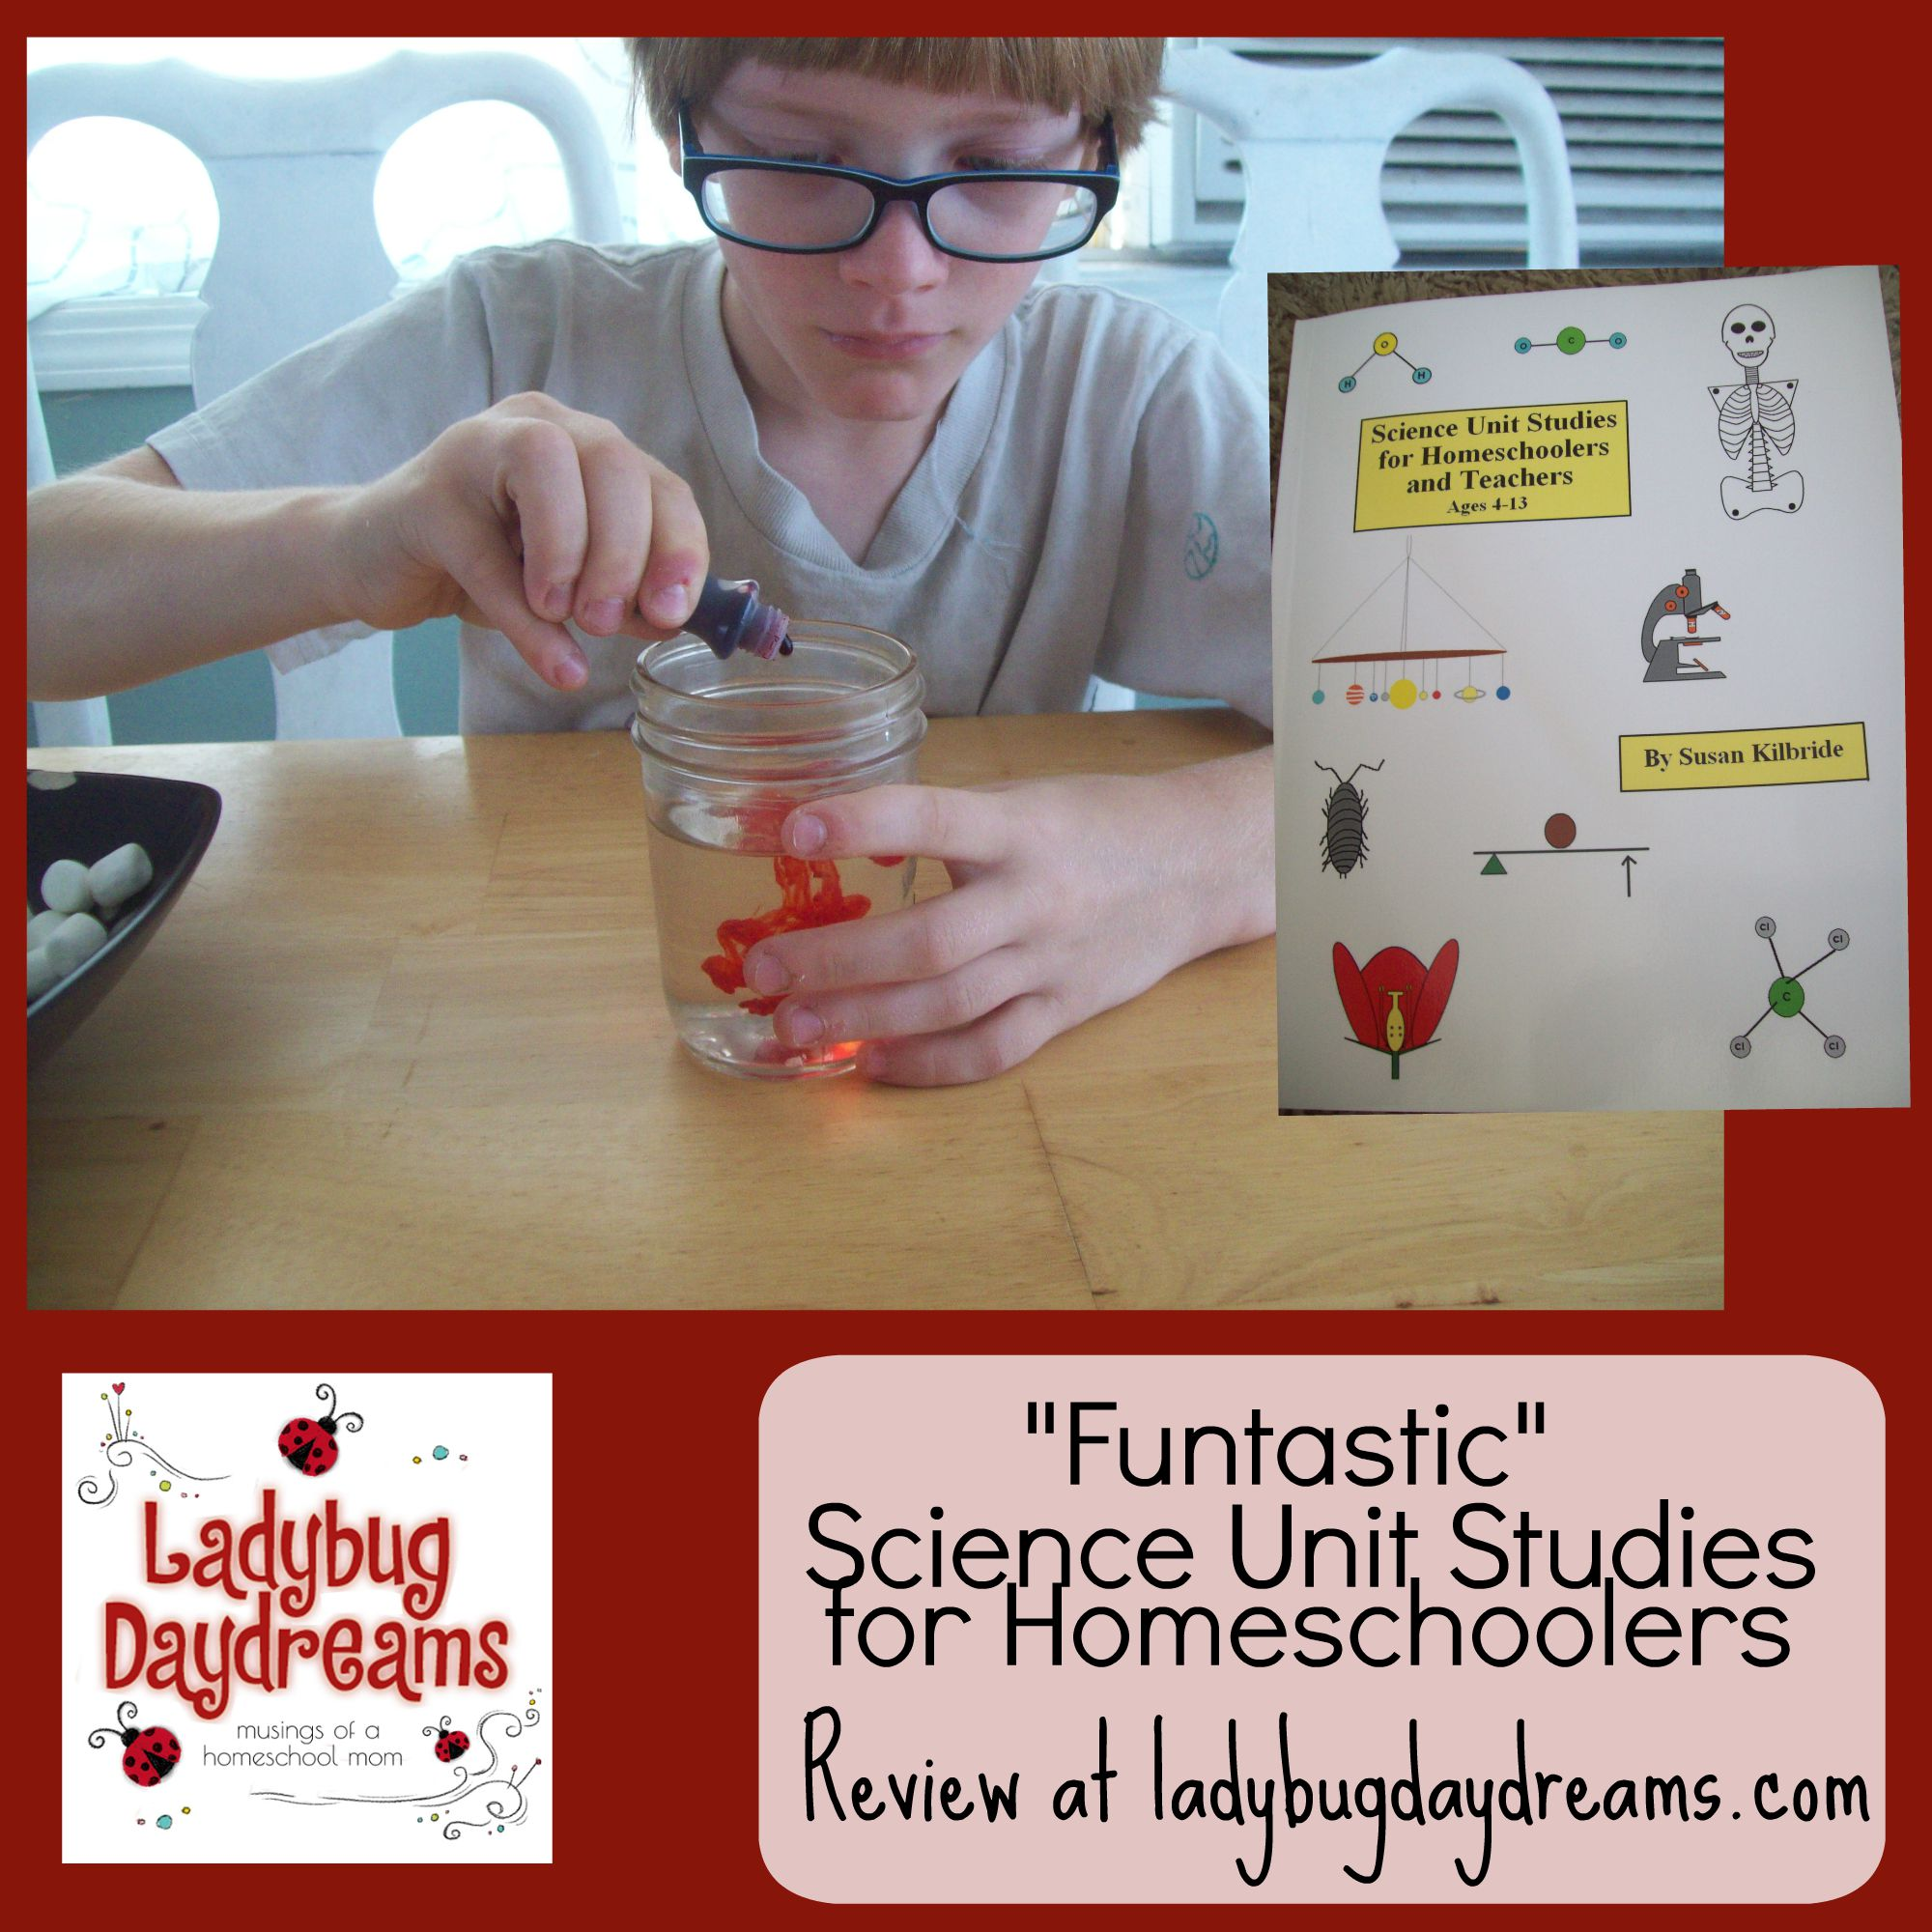 Funtastic Science Unit Studies for Homeschoolers review at Ladybug Daydreams